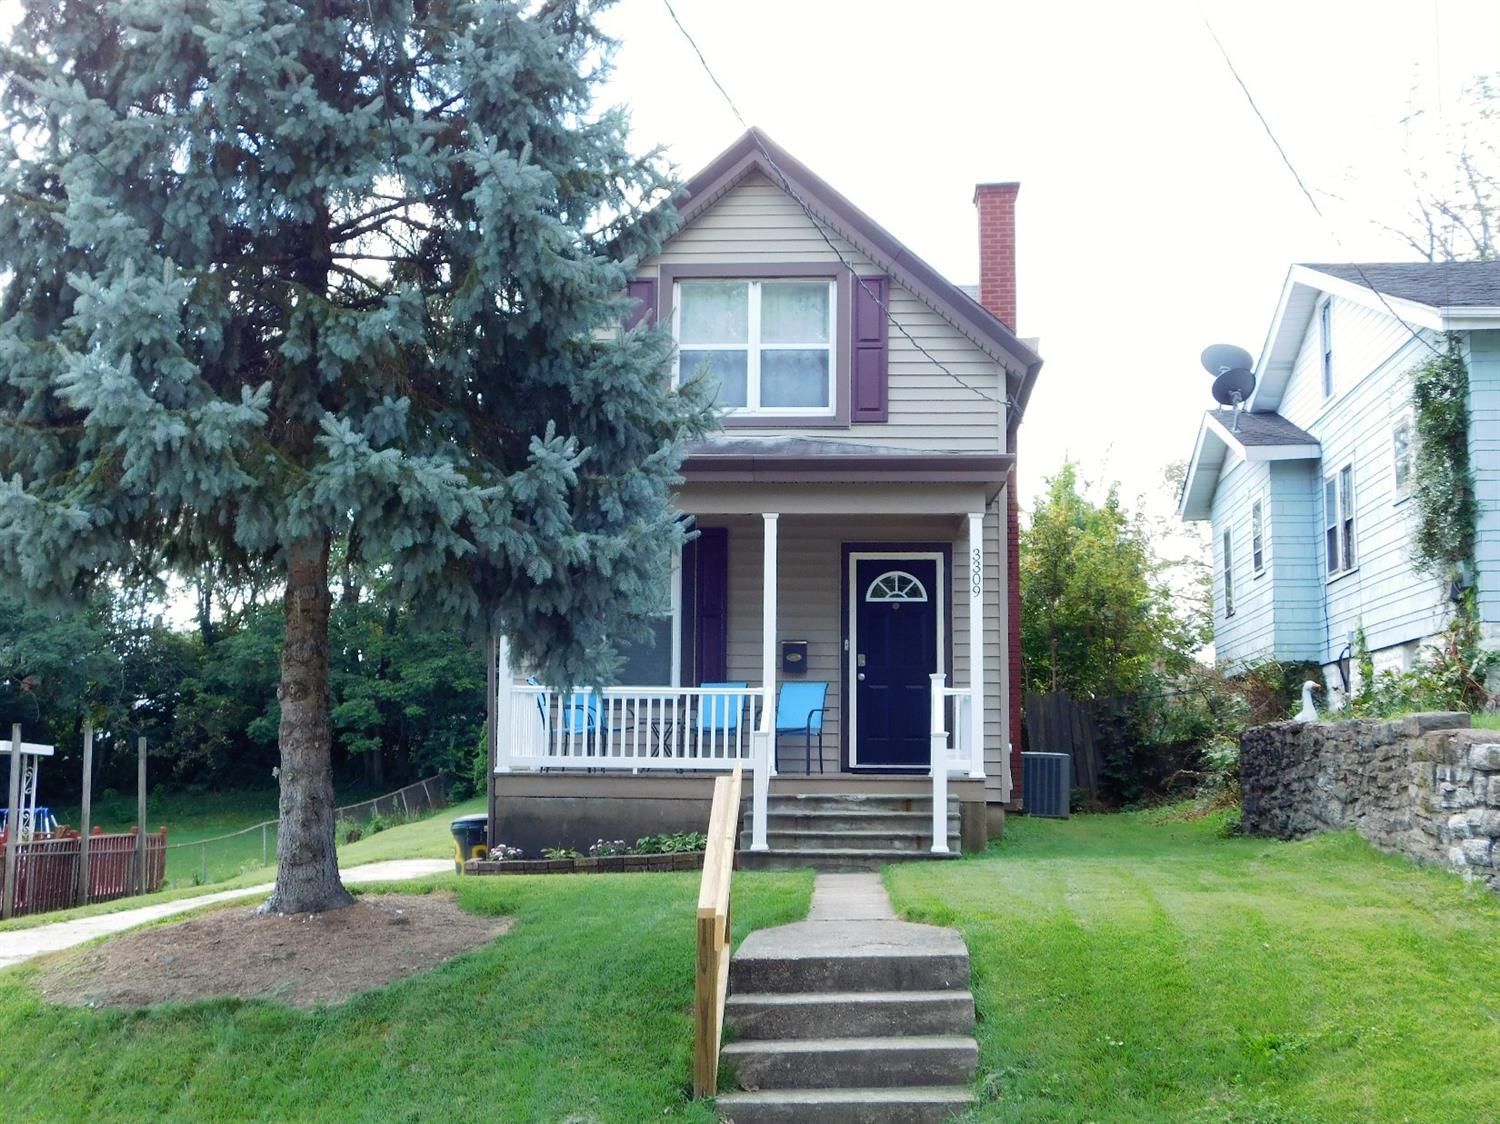 3309 Augusta Ave Cheviot Oh 45211 Listing Details Mls